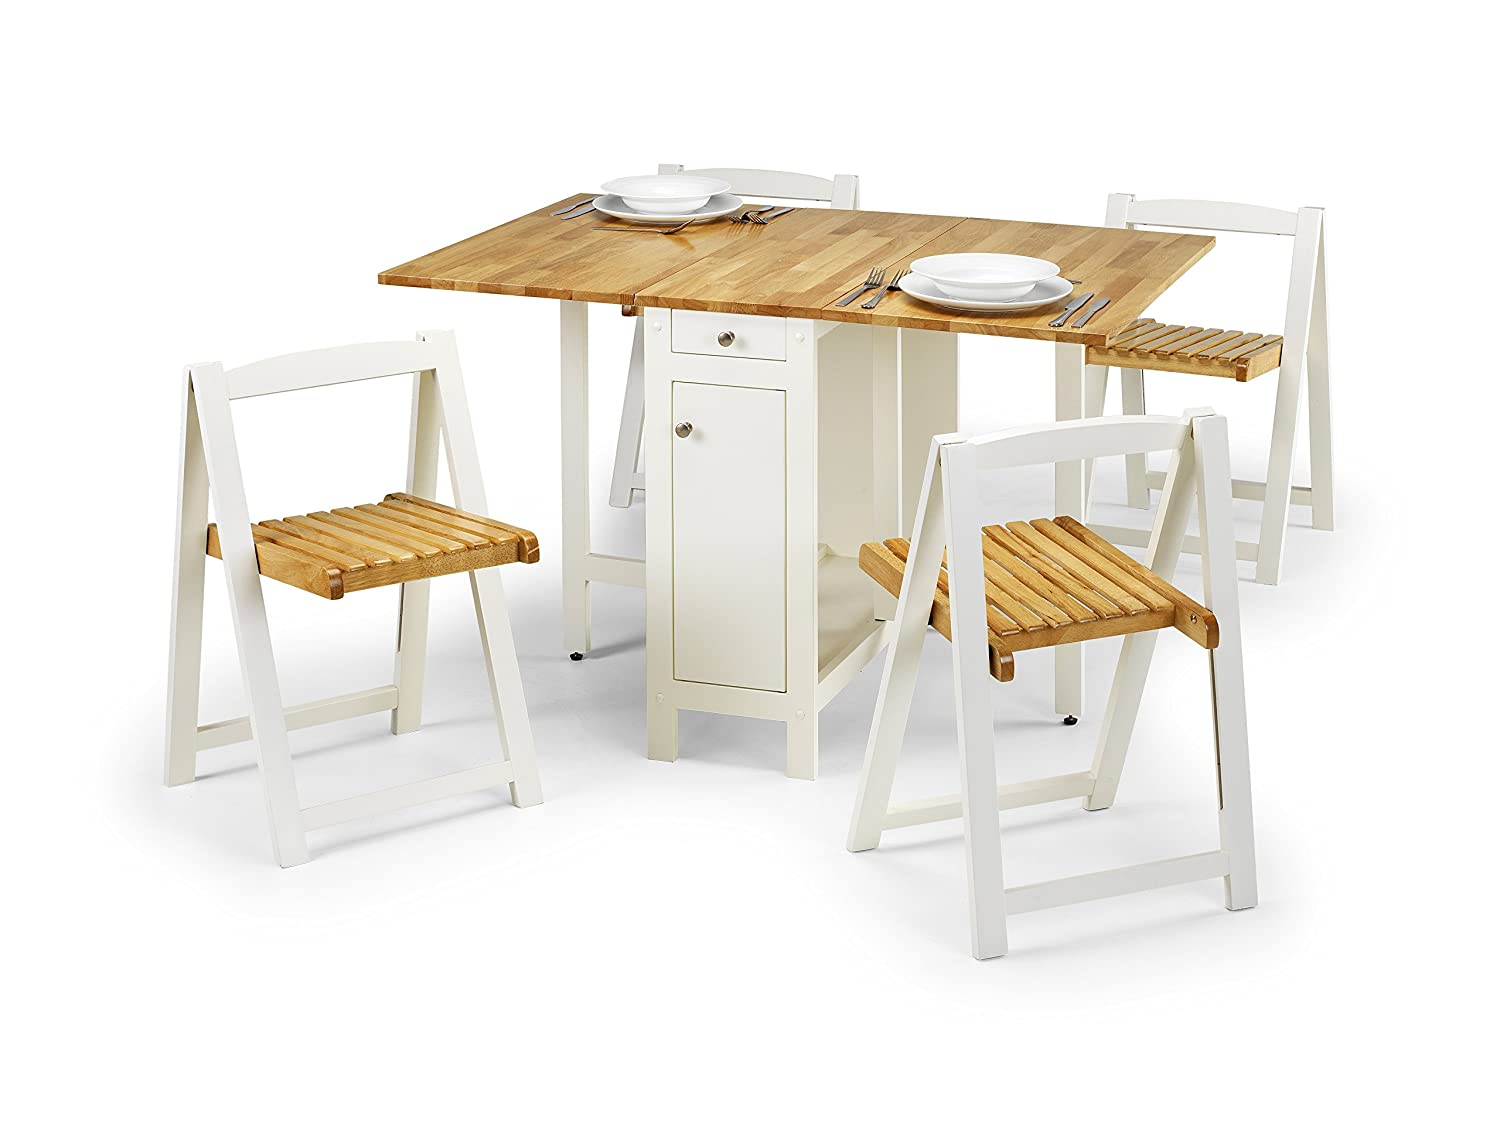 compact dining furniture. Julian Bowen Savoy Compact Dining Set - White/Natural Lacquered Finish: Amazon.co.uk: Kitchen \u0026 Home Furniture T